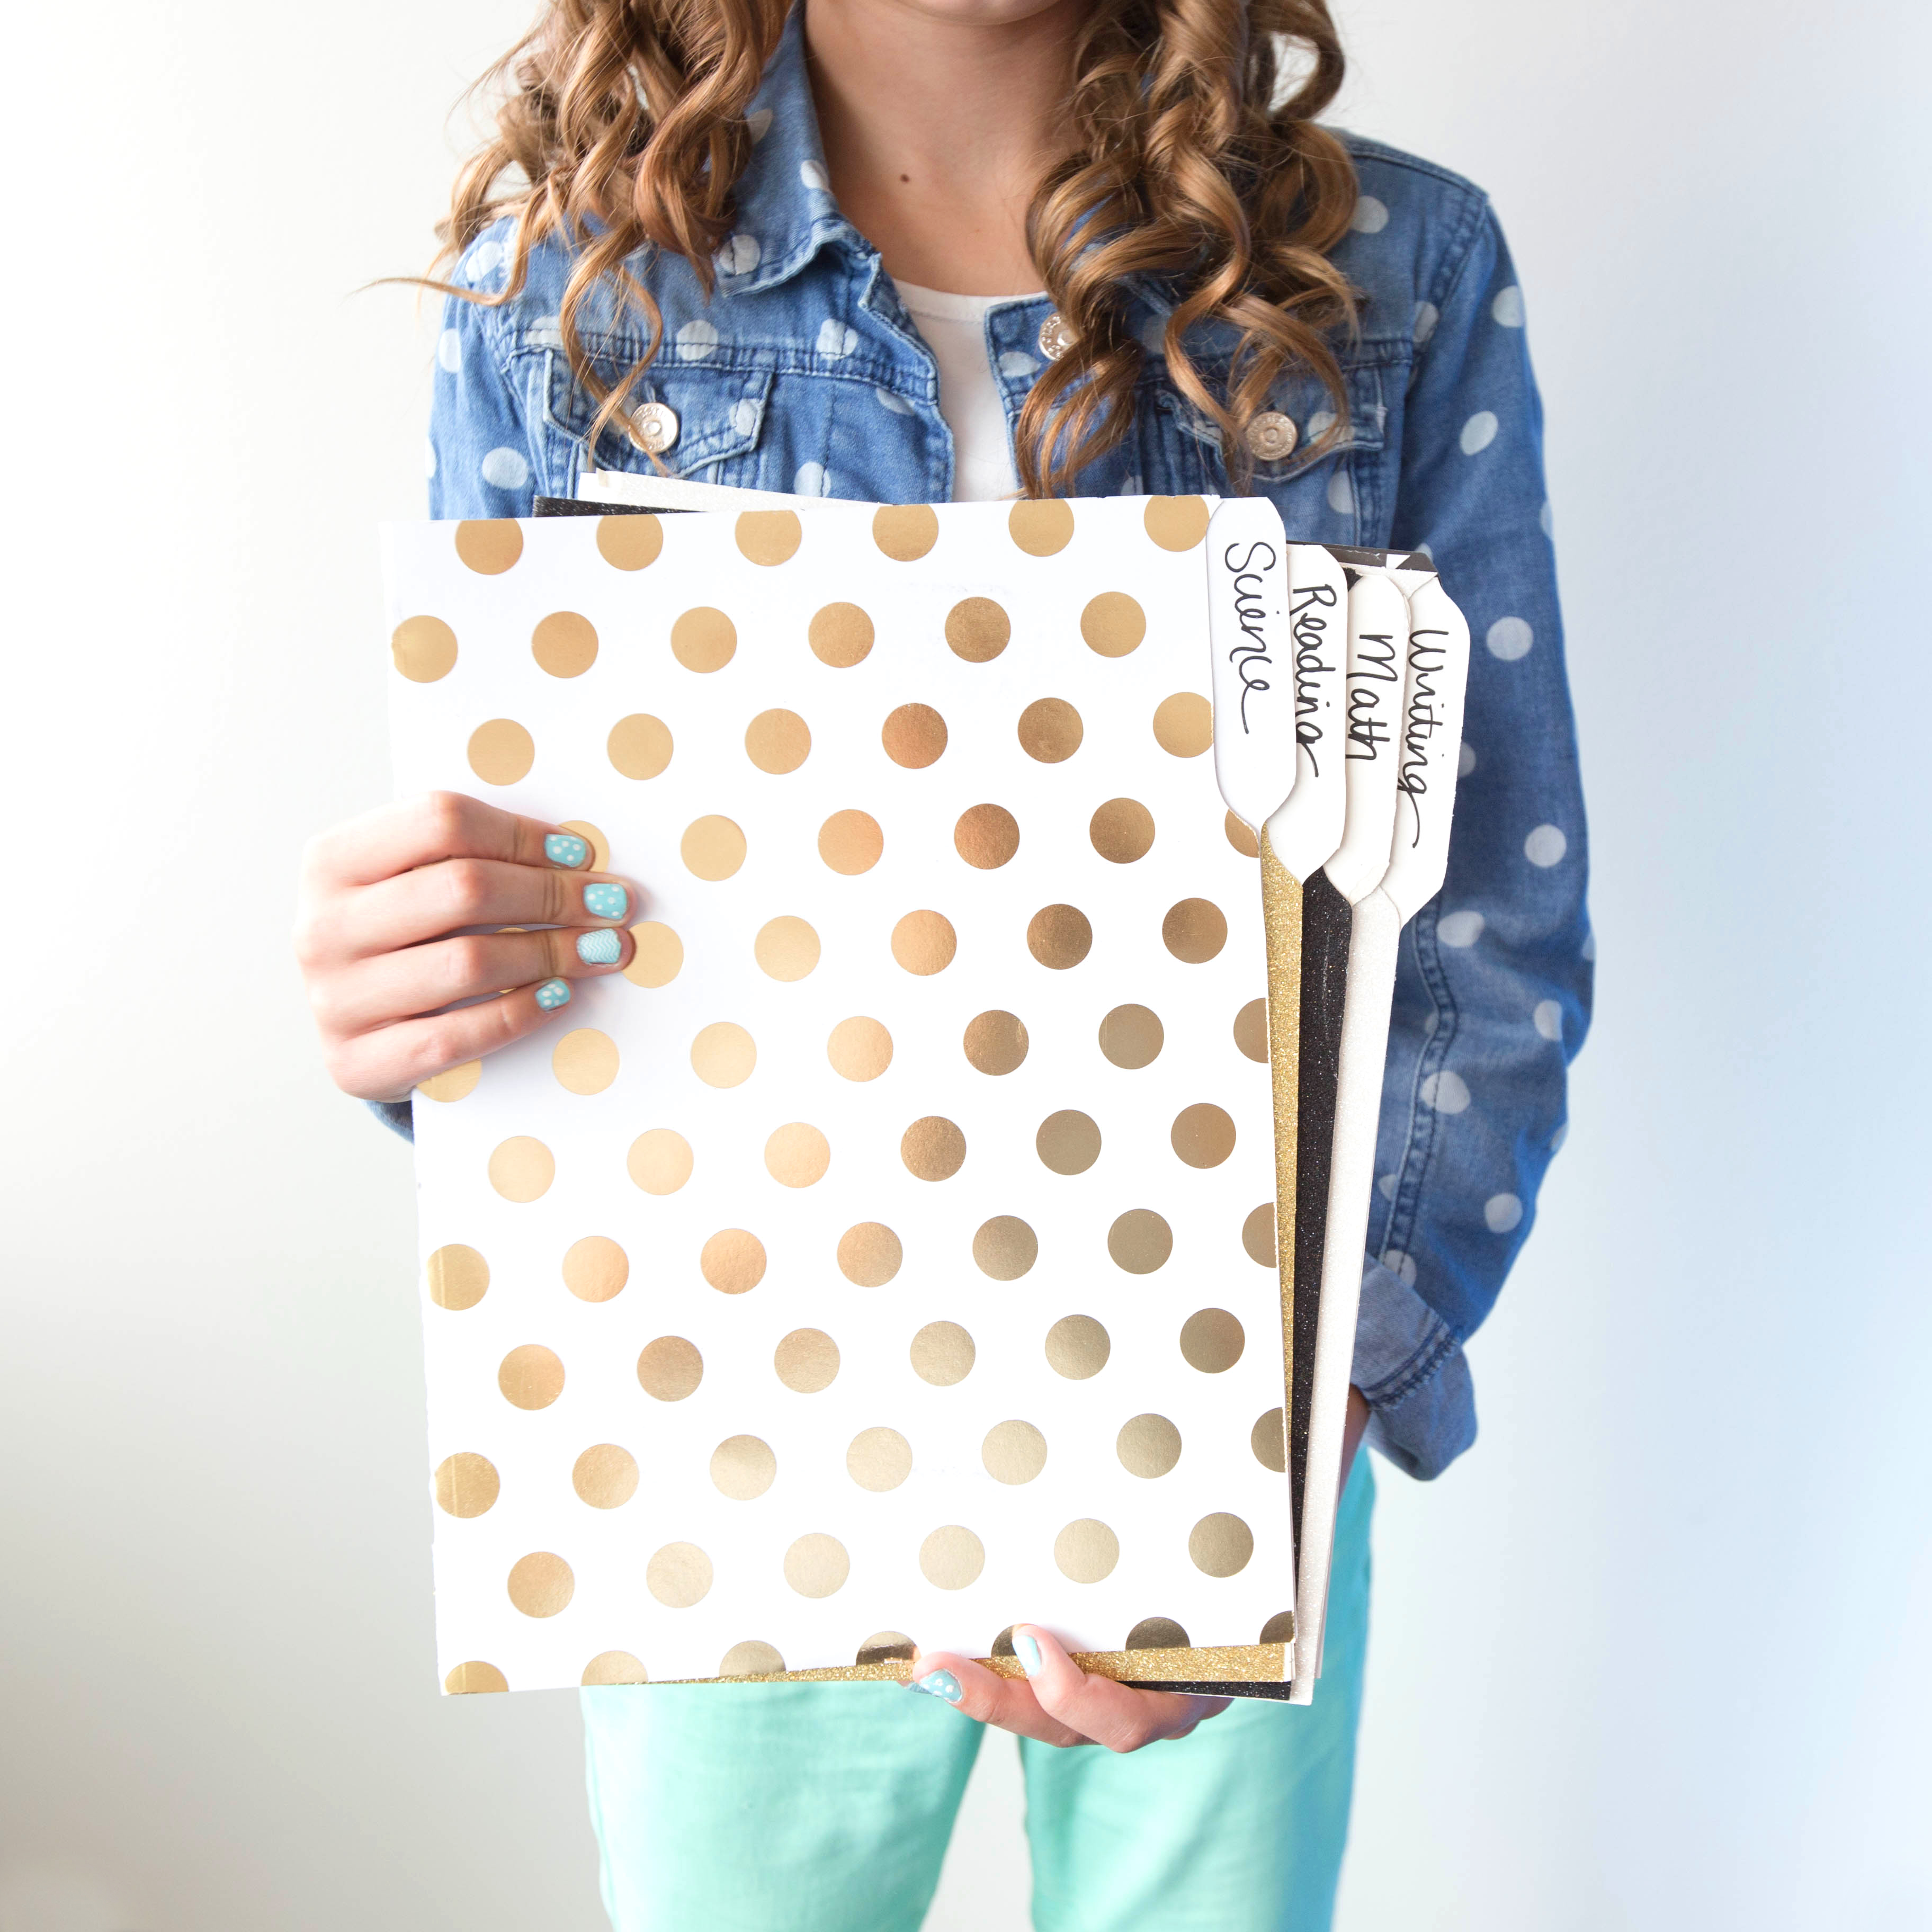 MultiBrand_-BackToSchool_StyledShoot-15